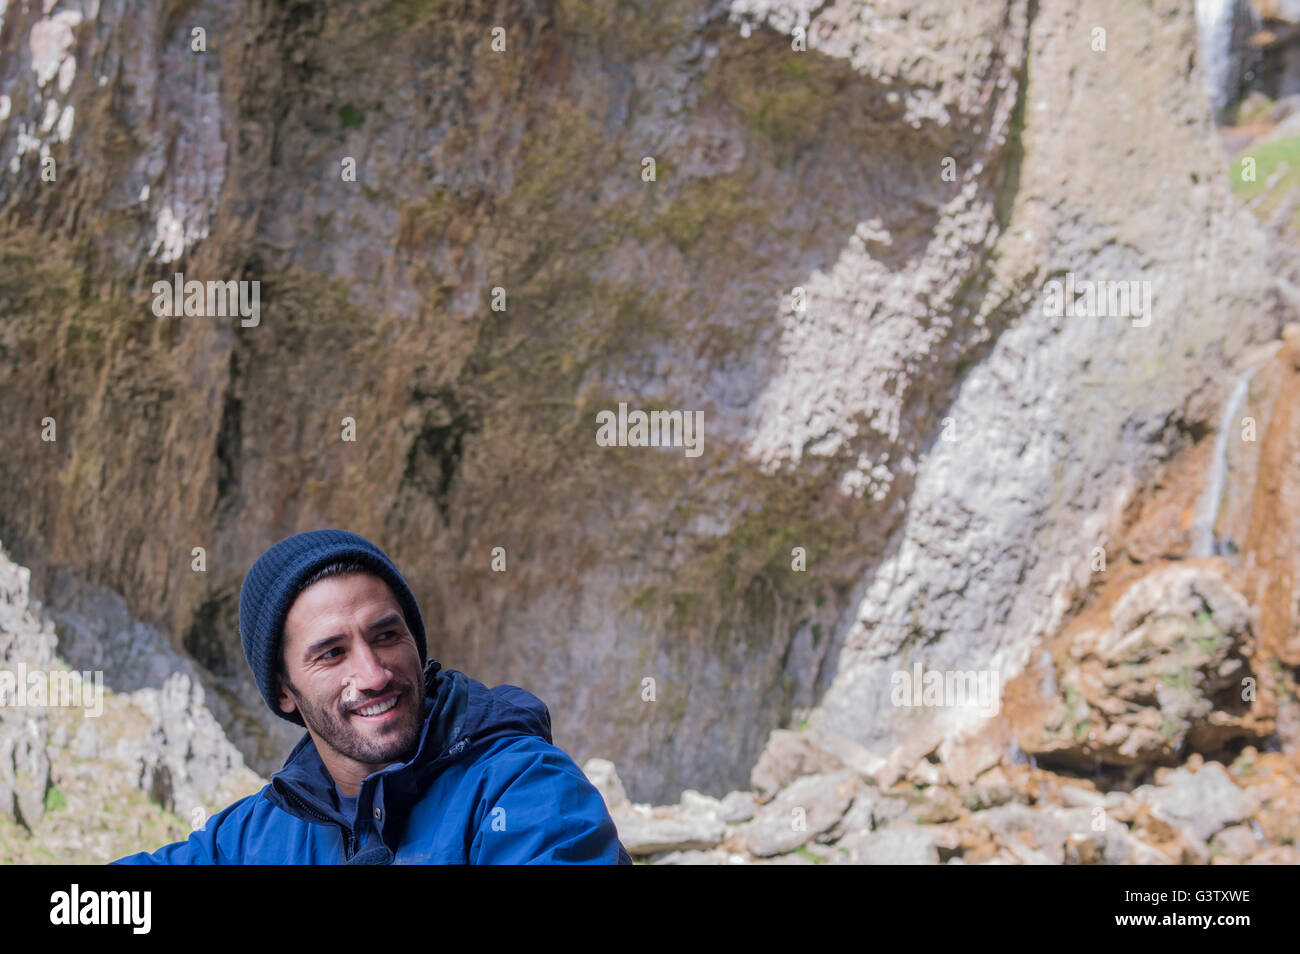 A mountaineer sitting in rugged terrain. - Stock Image